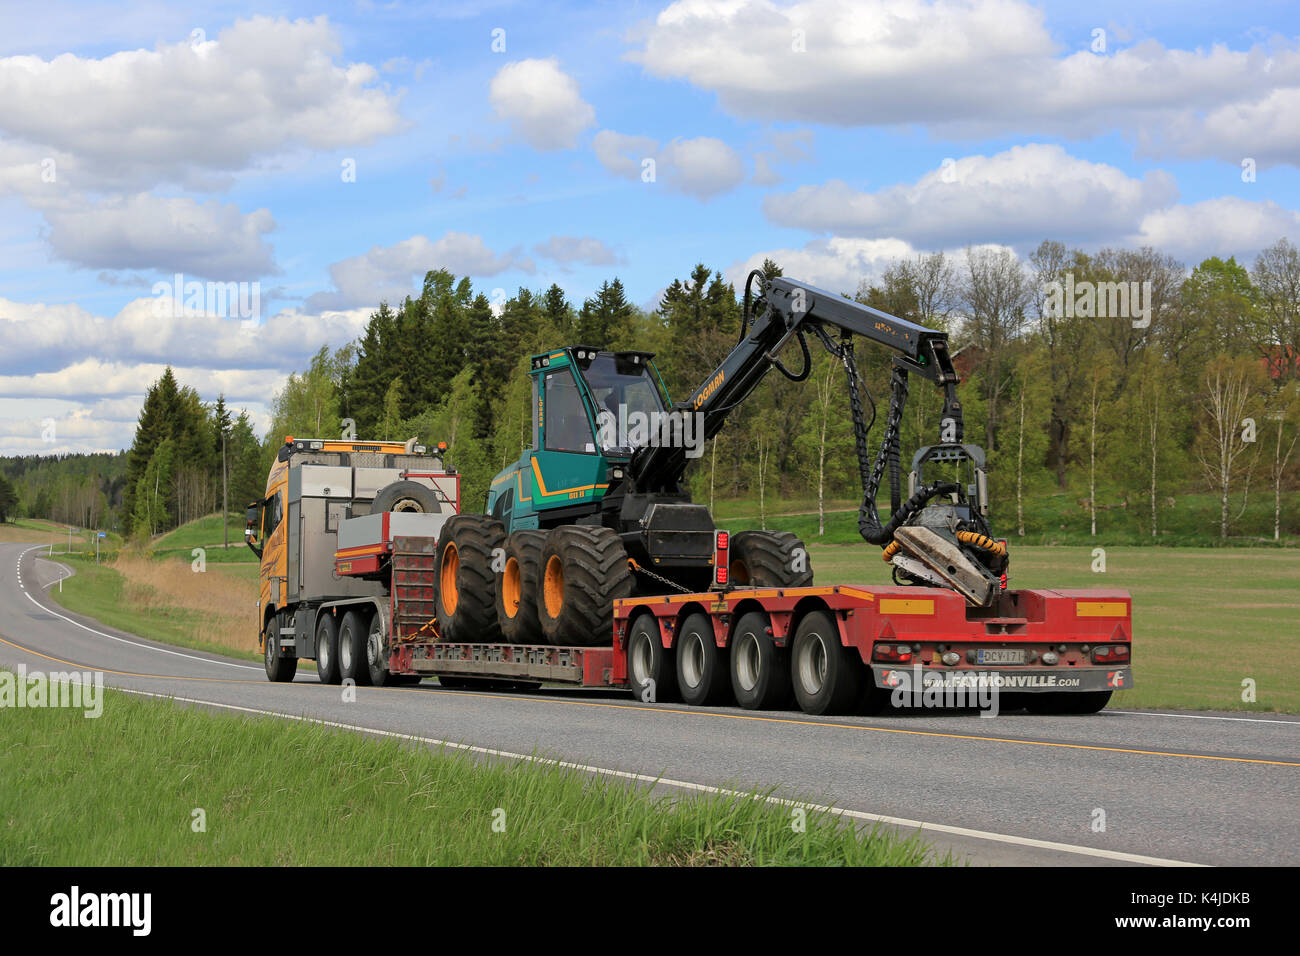 Forest Harvester Stock Photos & Forest Harvester Stock Images - Alamy